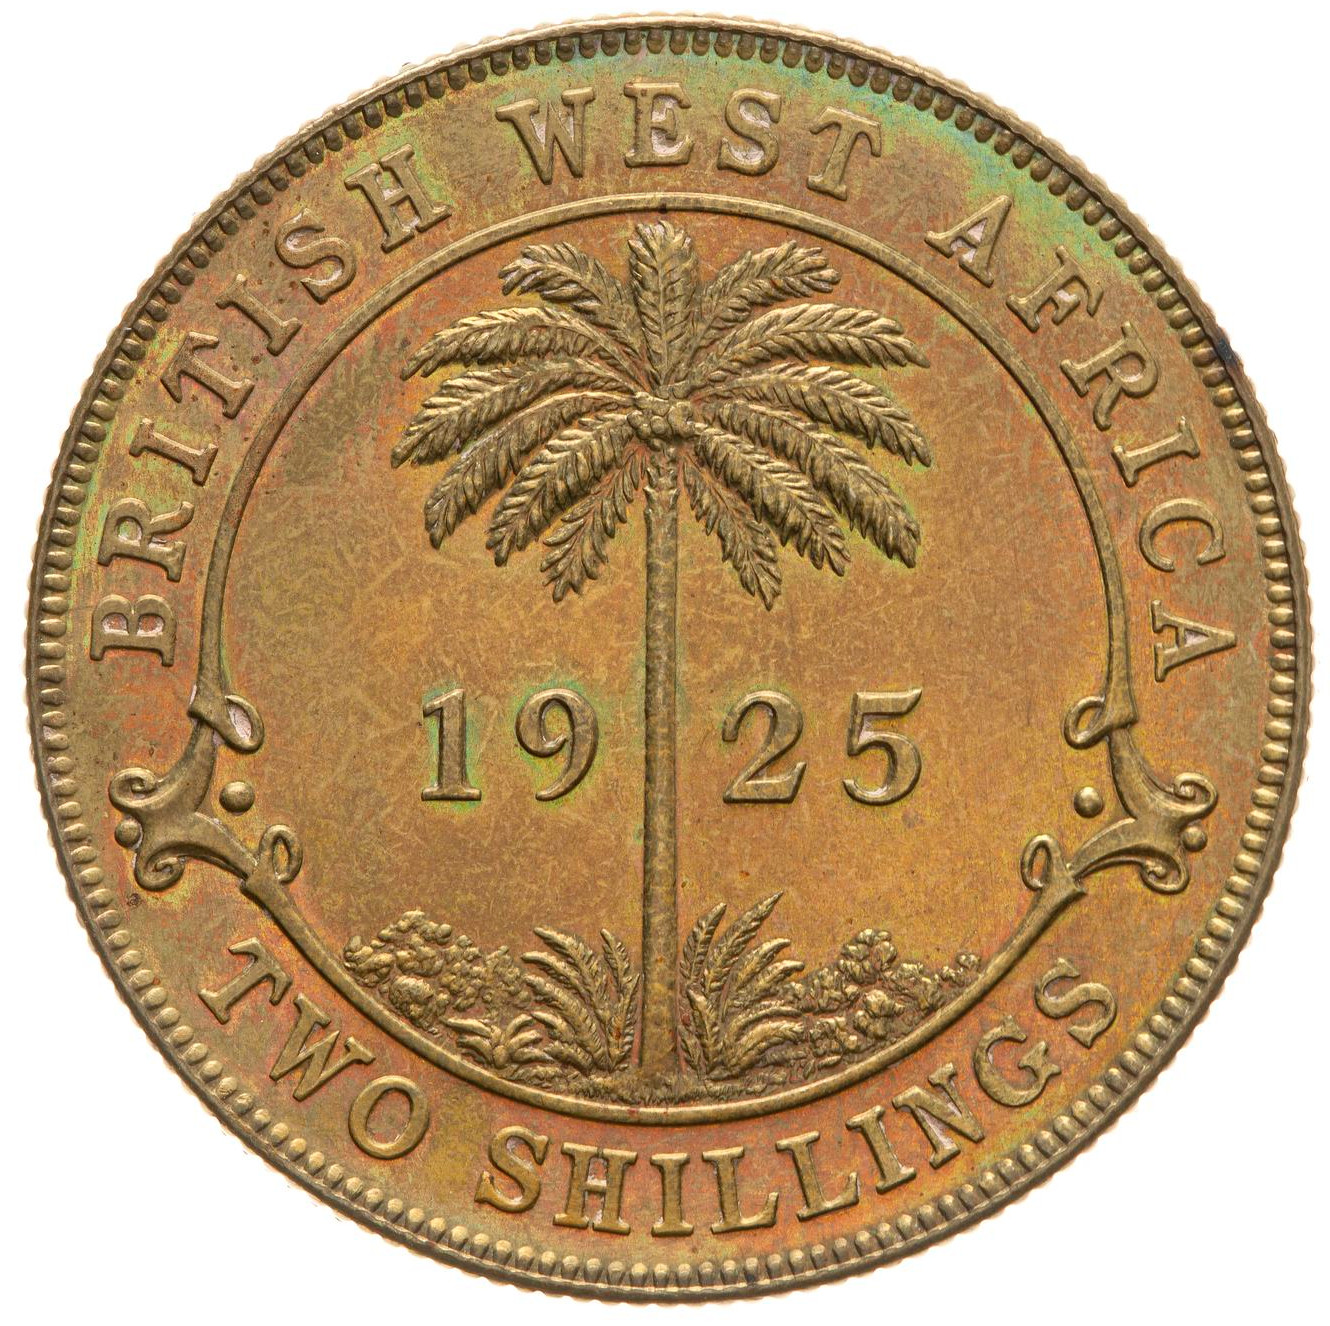 Two Shillings (Tin Brass): Photo Proof Coin - 2 Shillings, British West Africa, 1925